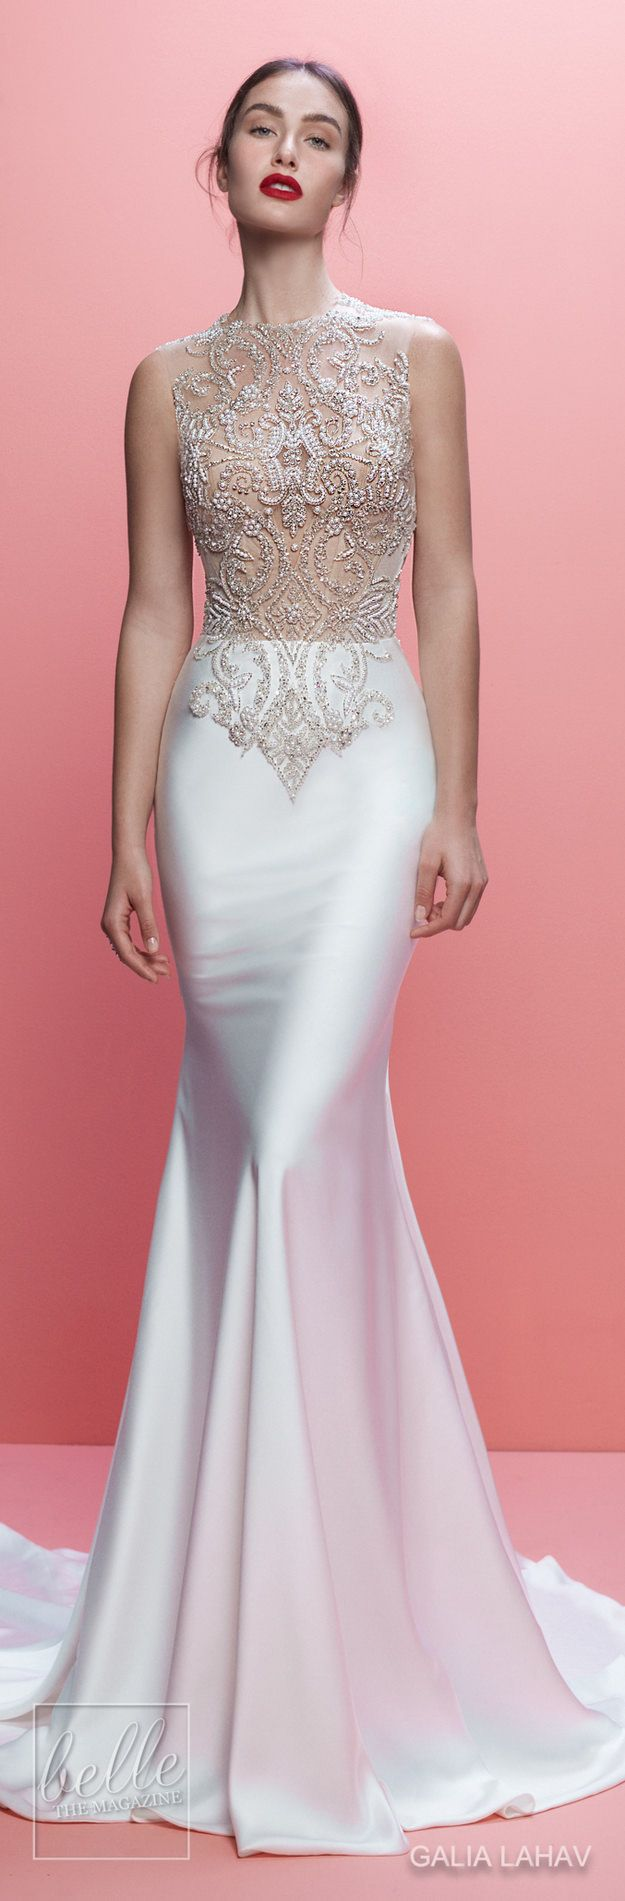 Wedding dress shops in deira dubai  Galia Lahav Couture Bridal Spring  Collection Queen of Hearts